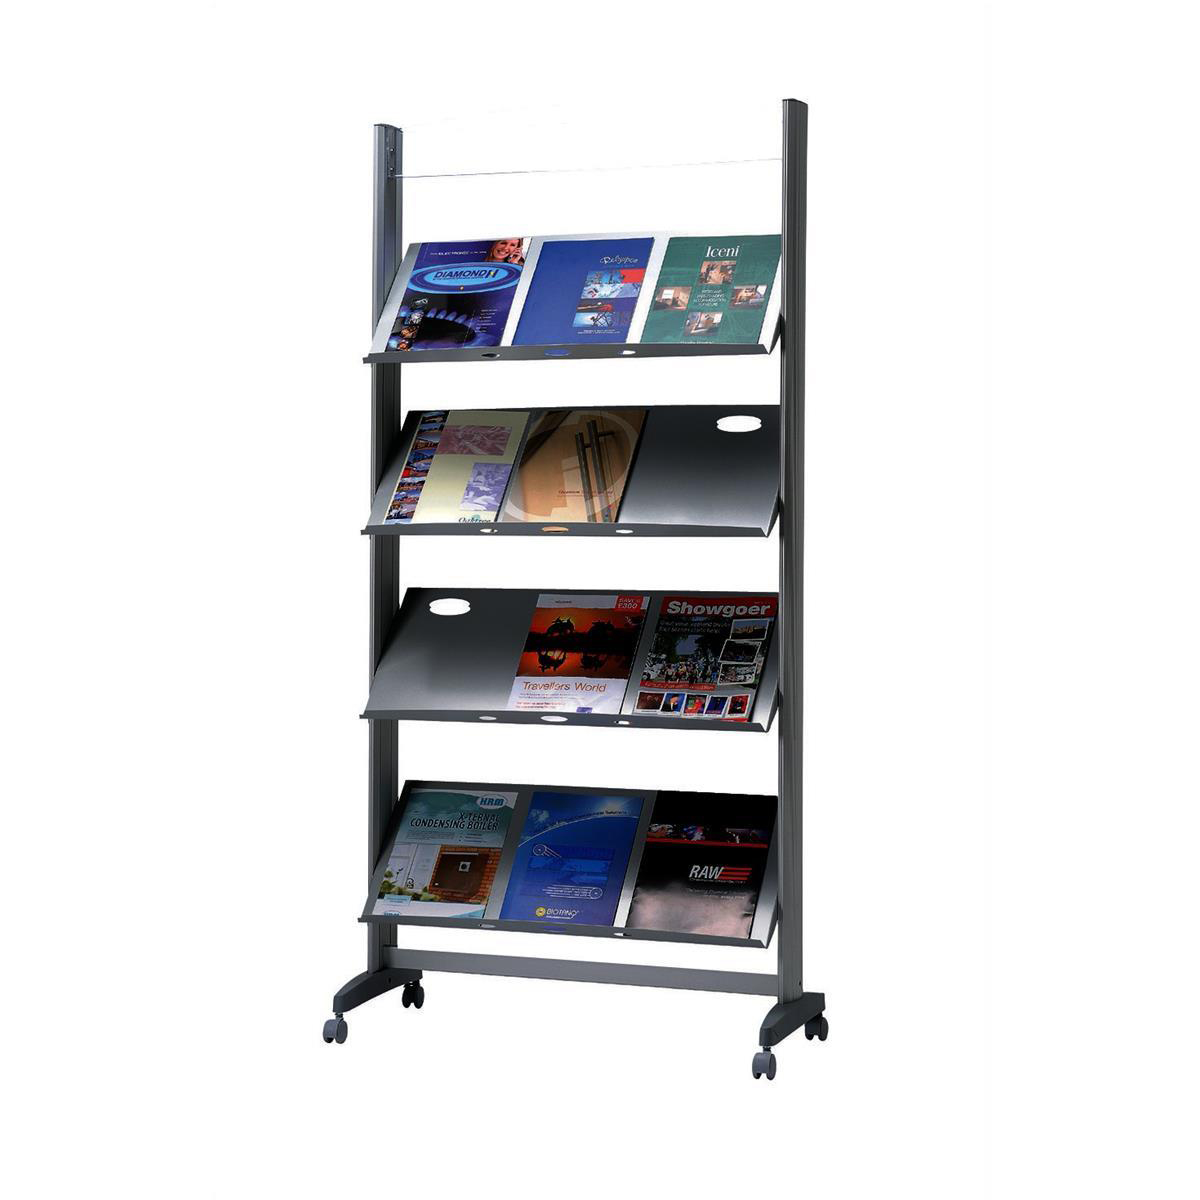 Fast Paper Literature Display Mobile 1 Sided 4 Metal Shelves 38mm Lip Ref 257TM.35